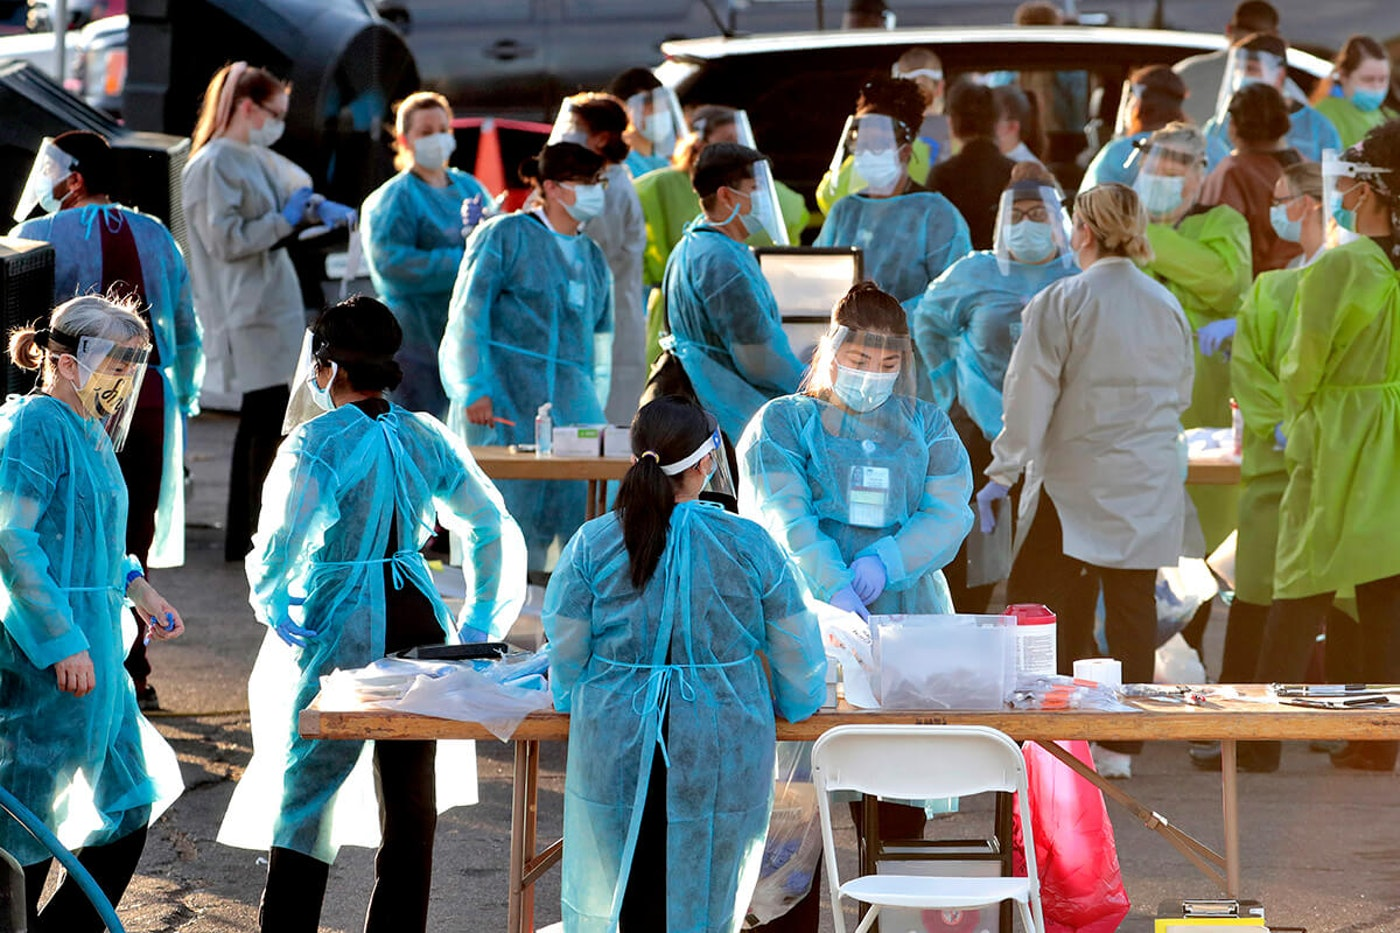 crowd of medical professionals wearing PPE working outside